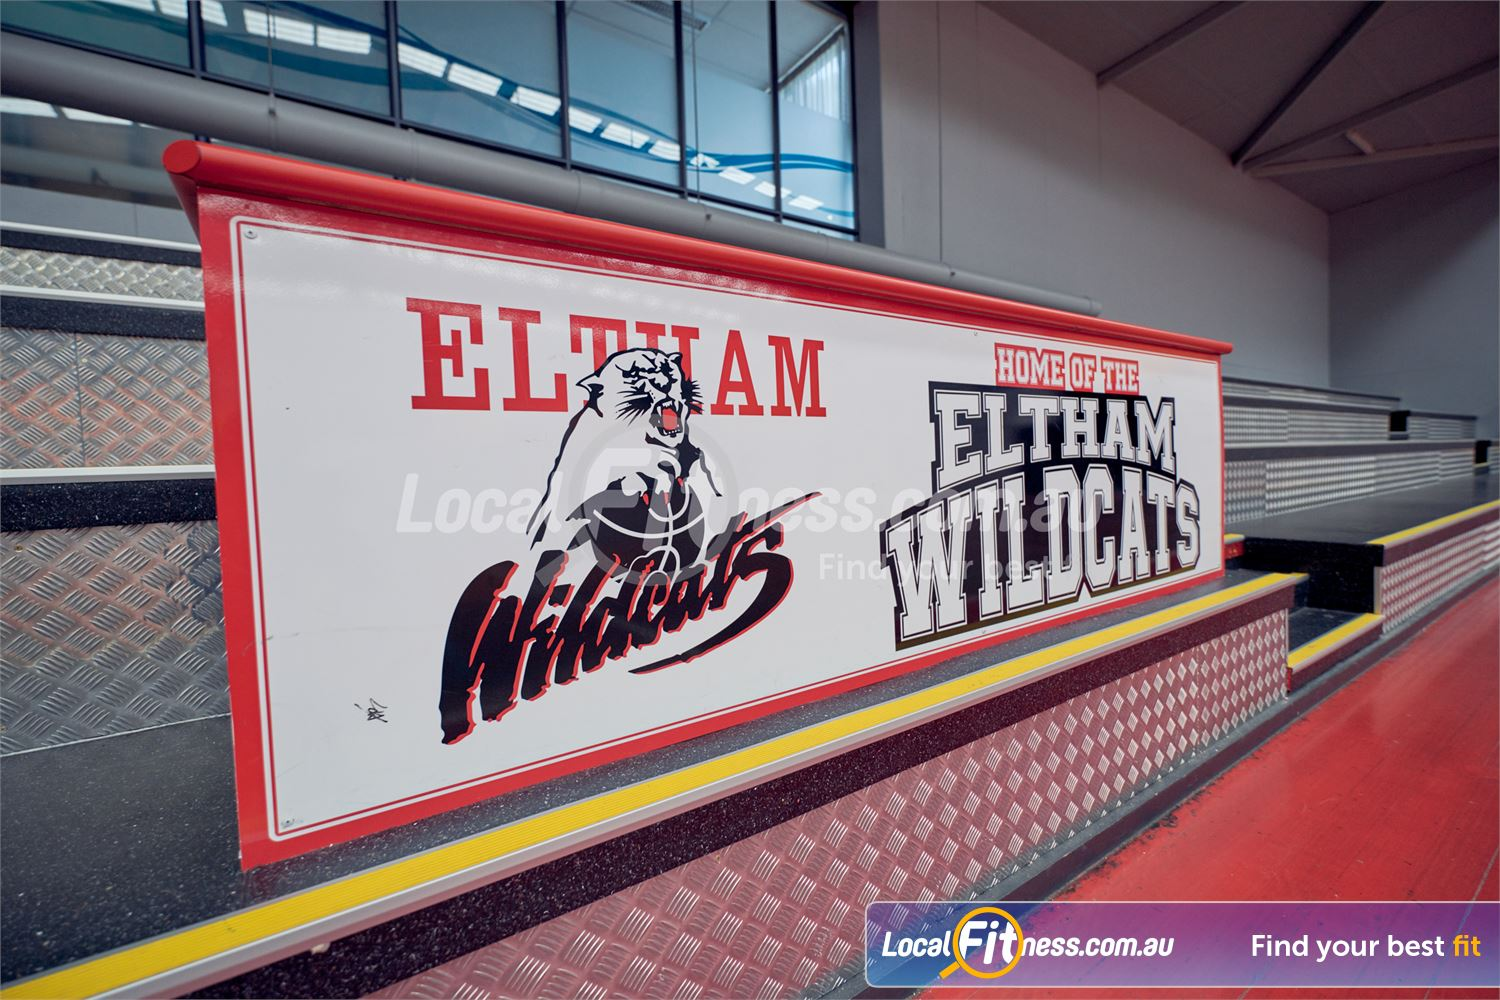 Eltham Leisure Centre Near Research The Eltham basketball court is home to the Wletham Wildcats.